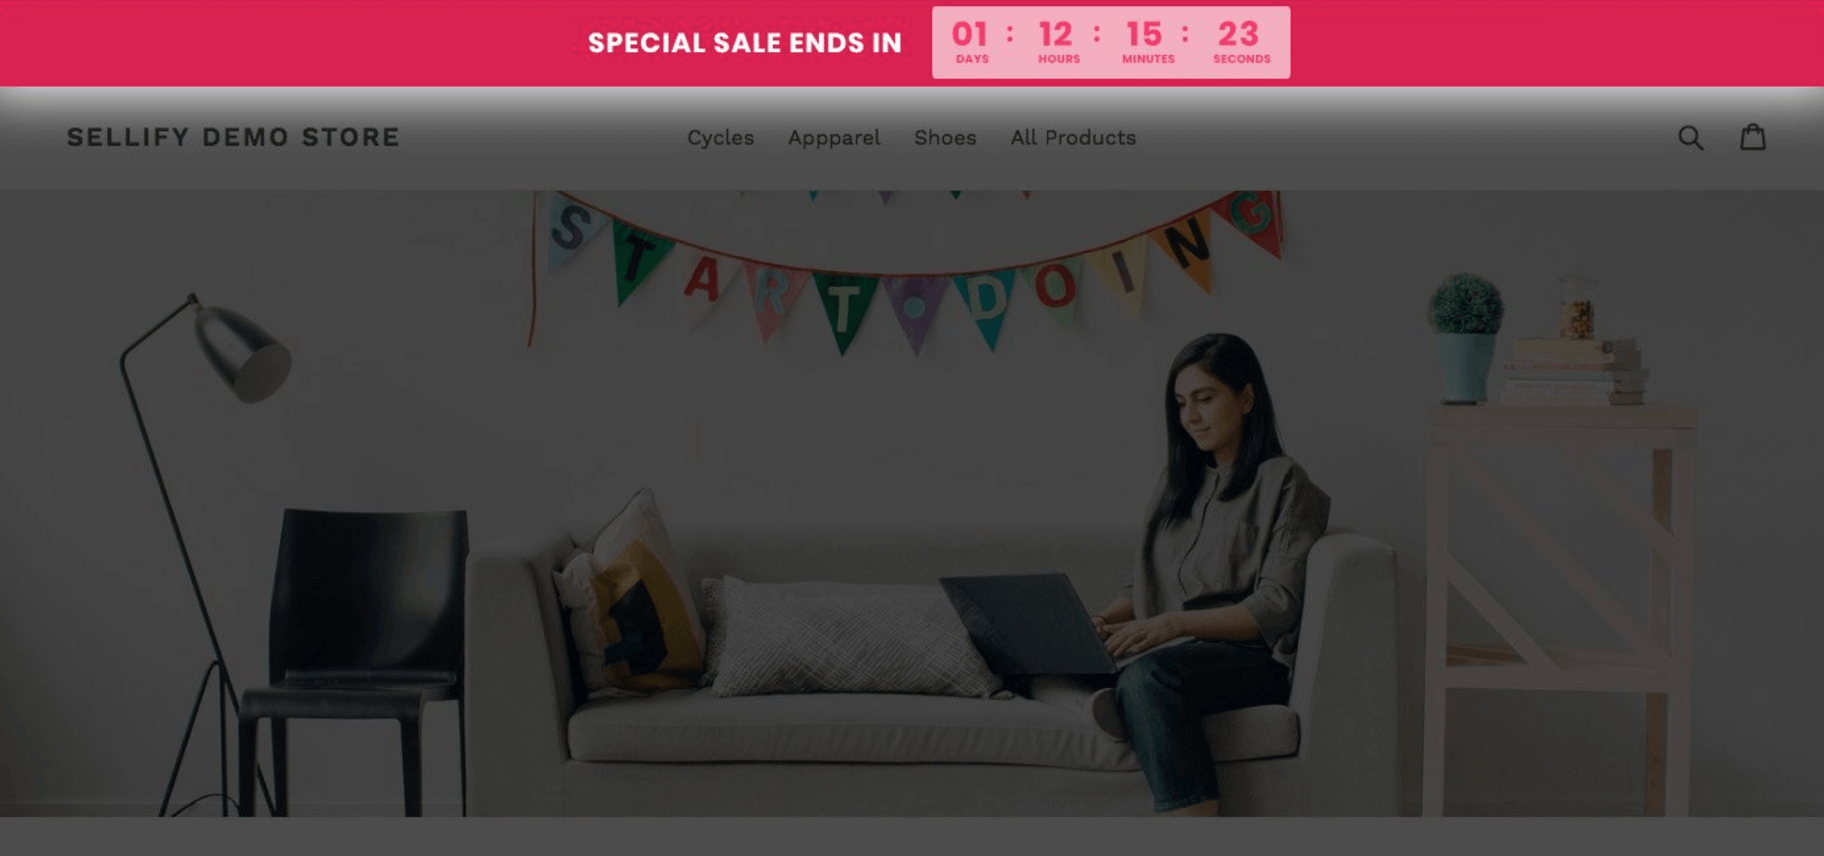 sales promotion strategies countdown